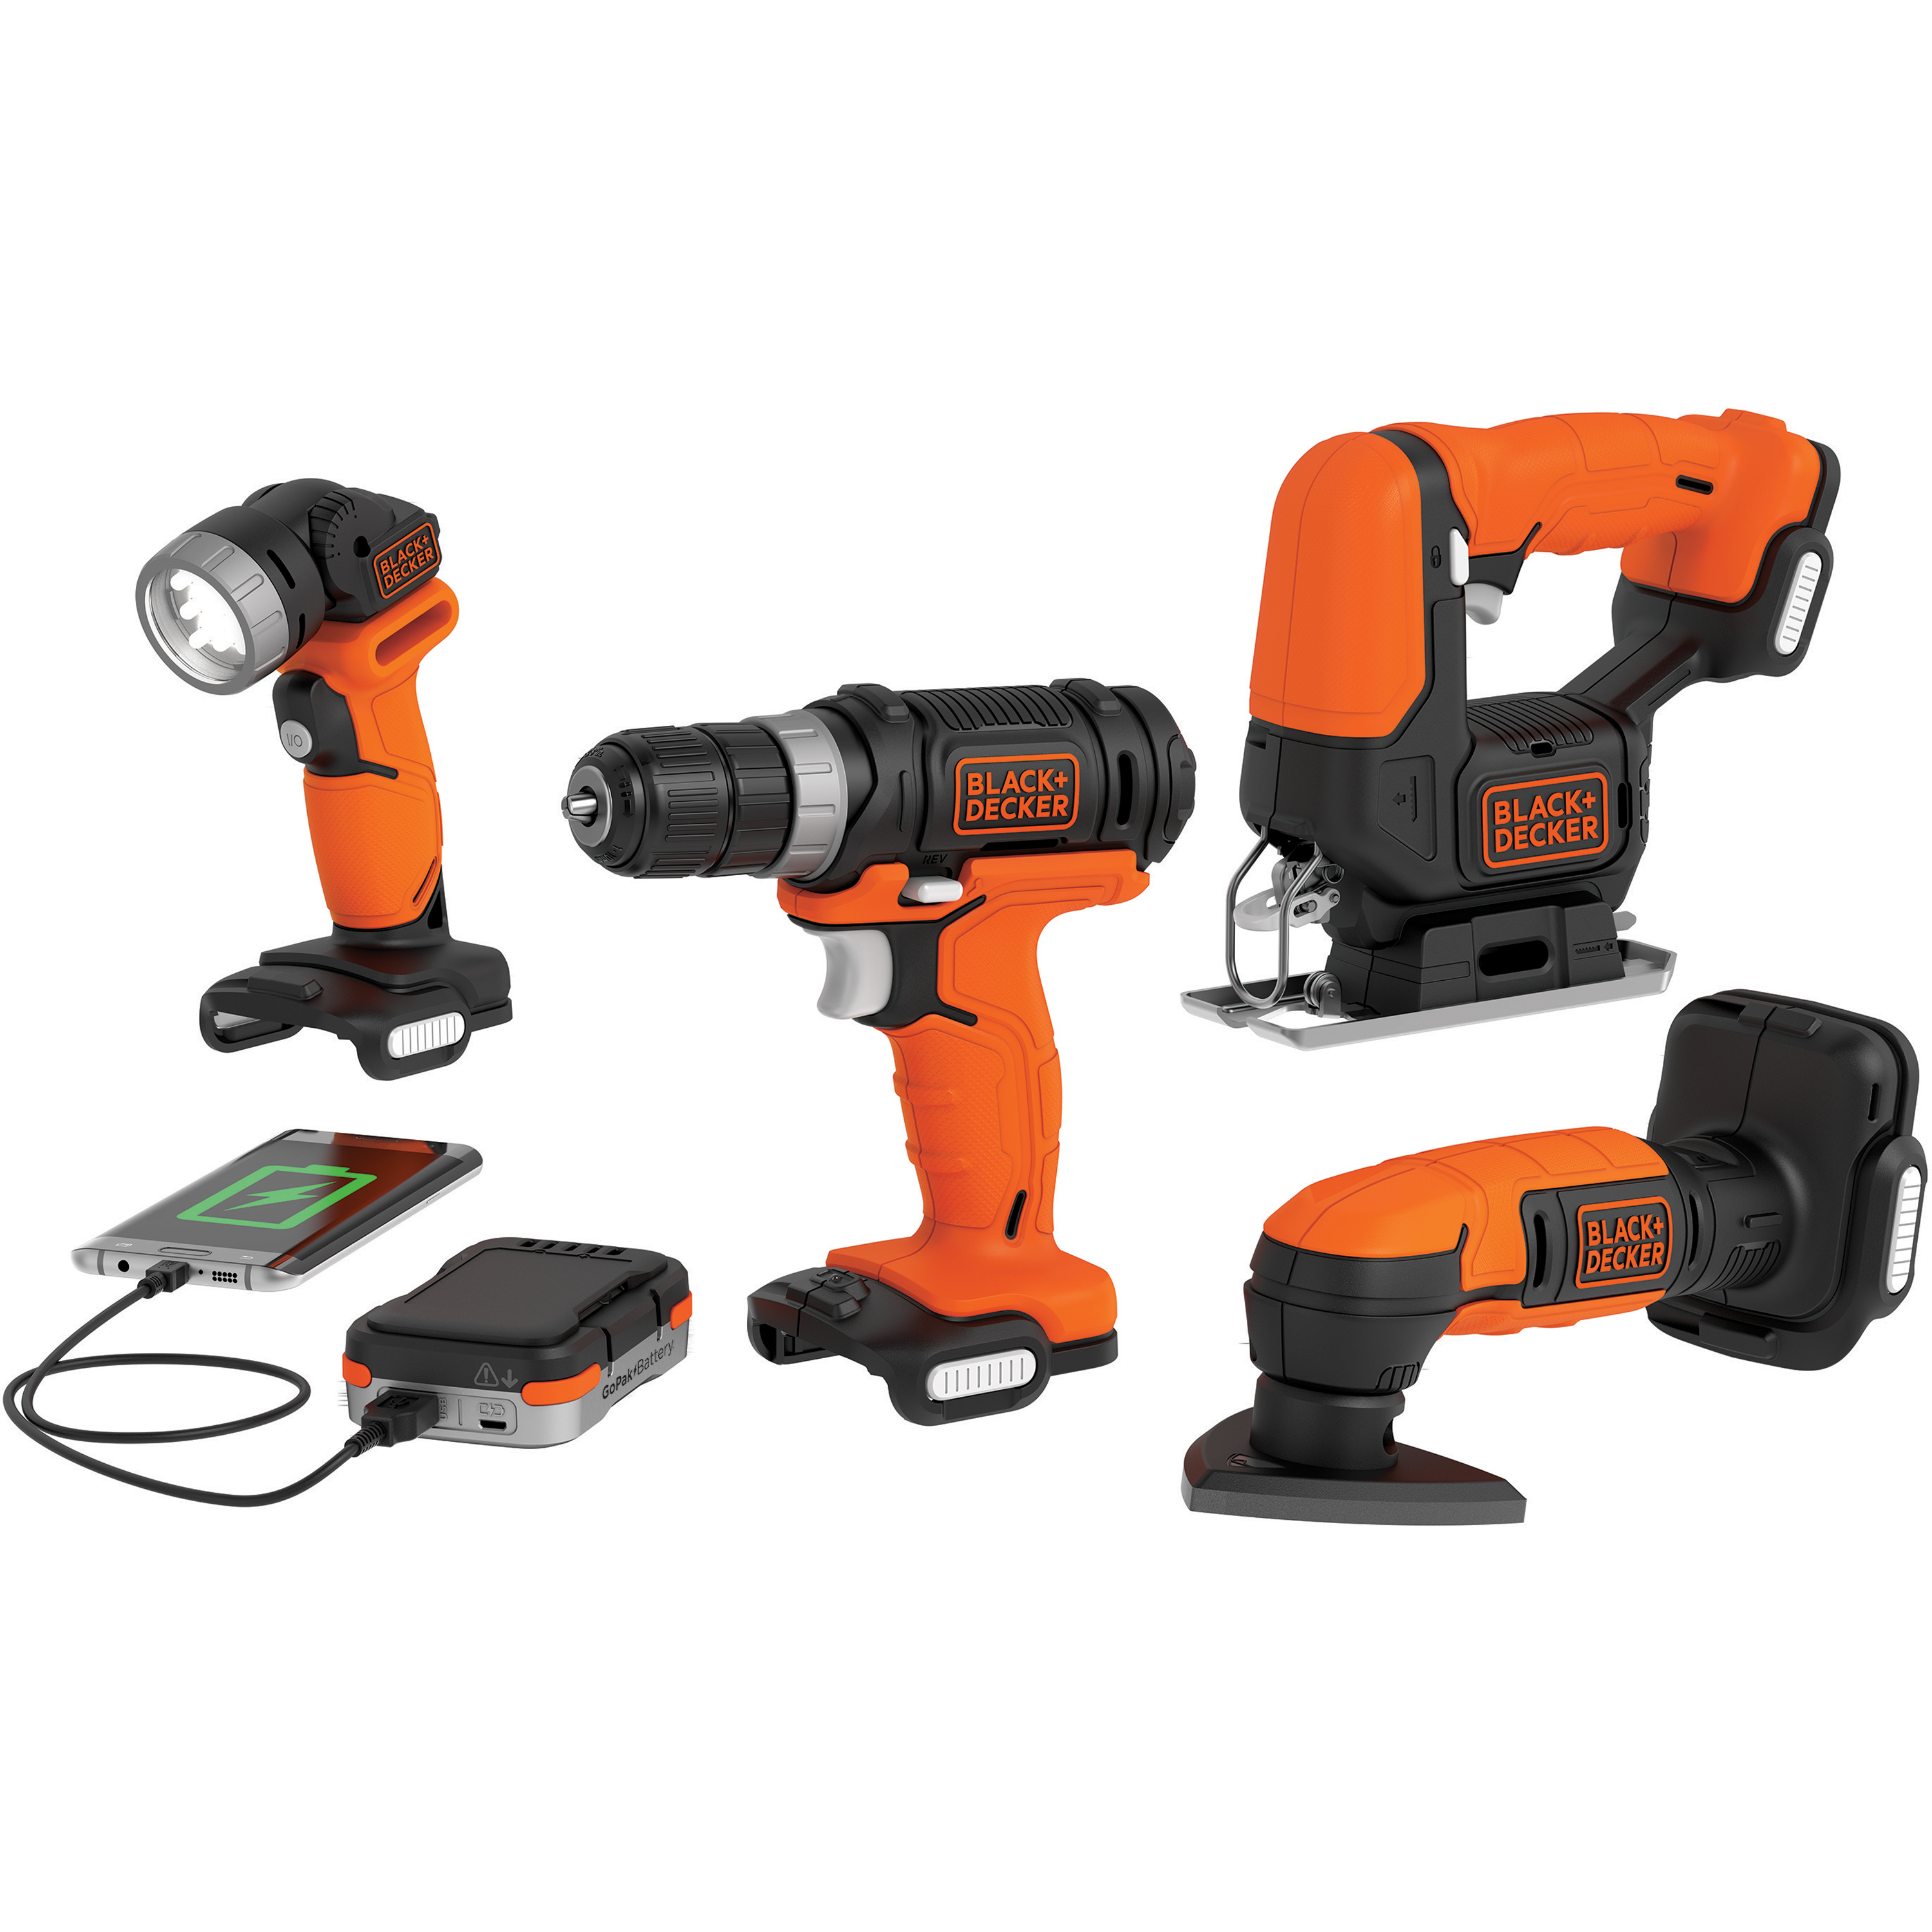 BLACK+DECKER BDCK502C1 GoPak 4-Tool Combo Kit (Drill/Jig/Sander/Light)